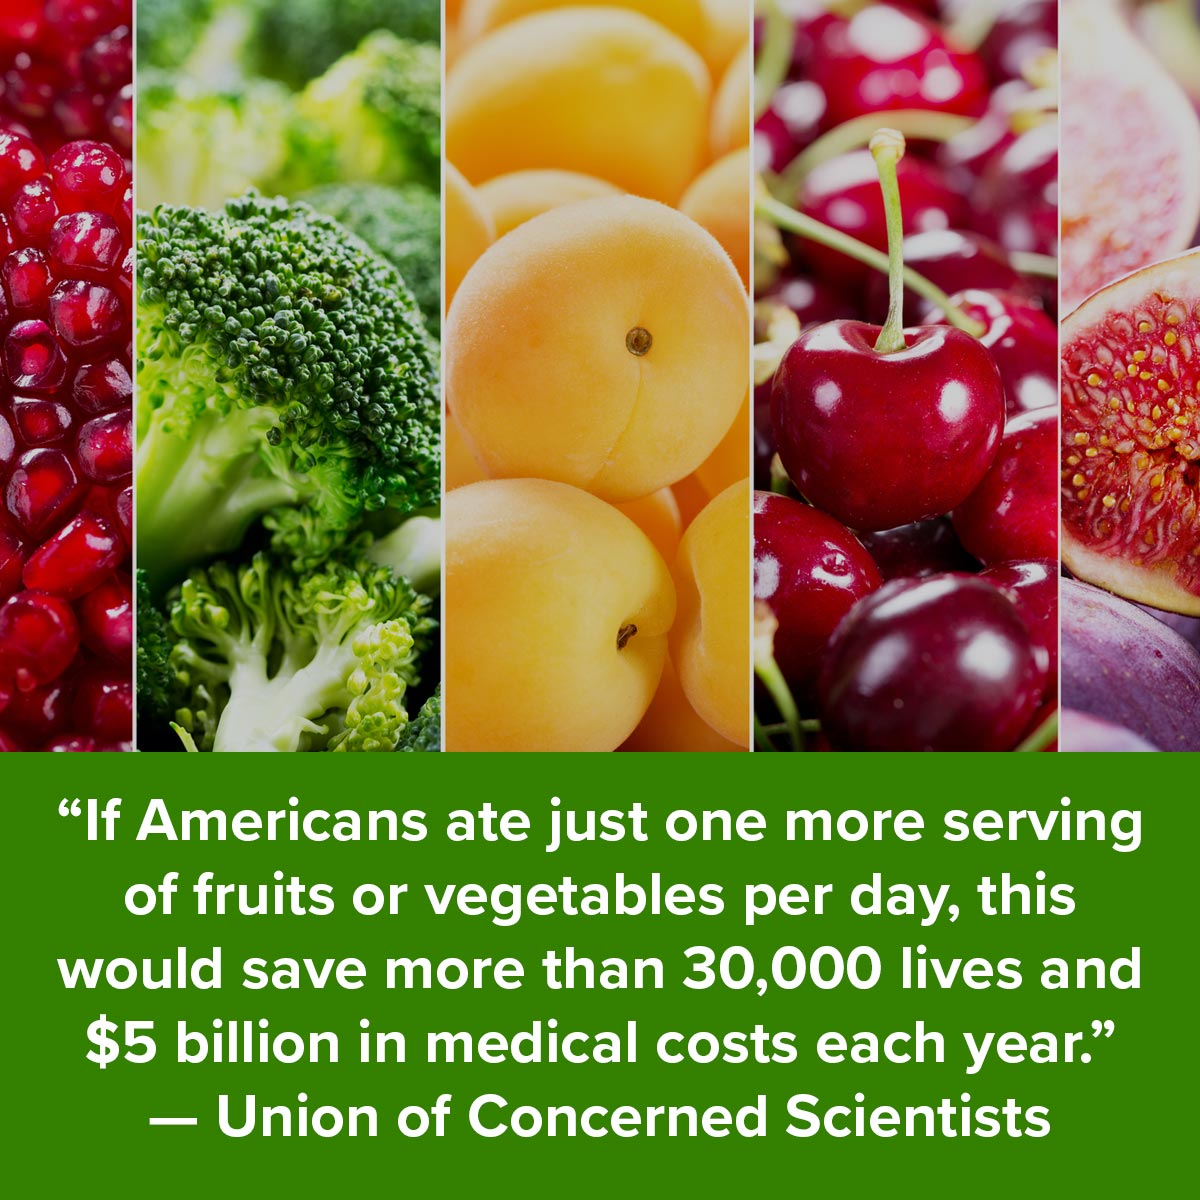 If Americans ate just one more serving of fruits or vegetables per day, this would save more than 30,000 live and $5 billion in medical costs each year - Union of Concerned Scientists